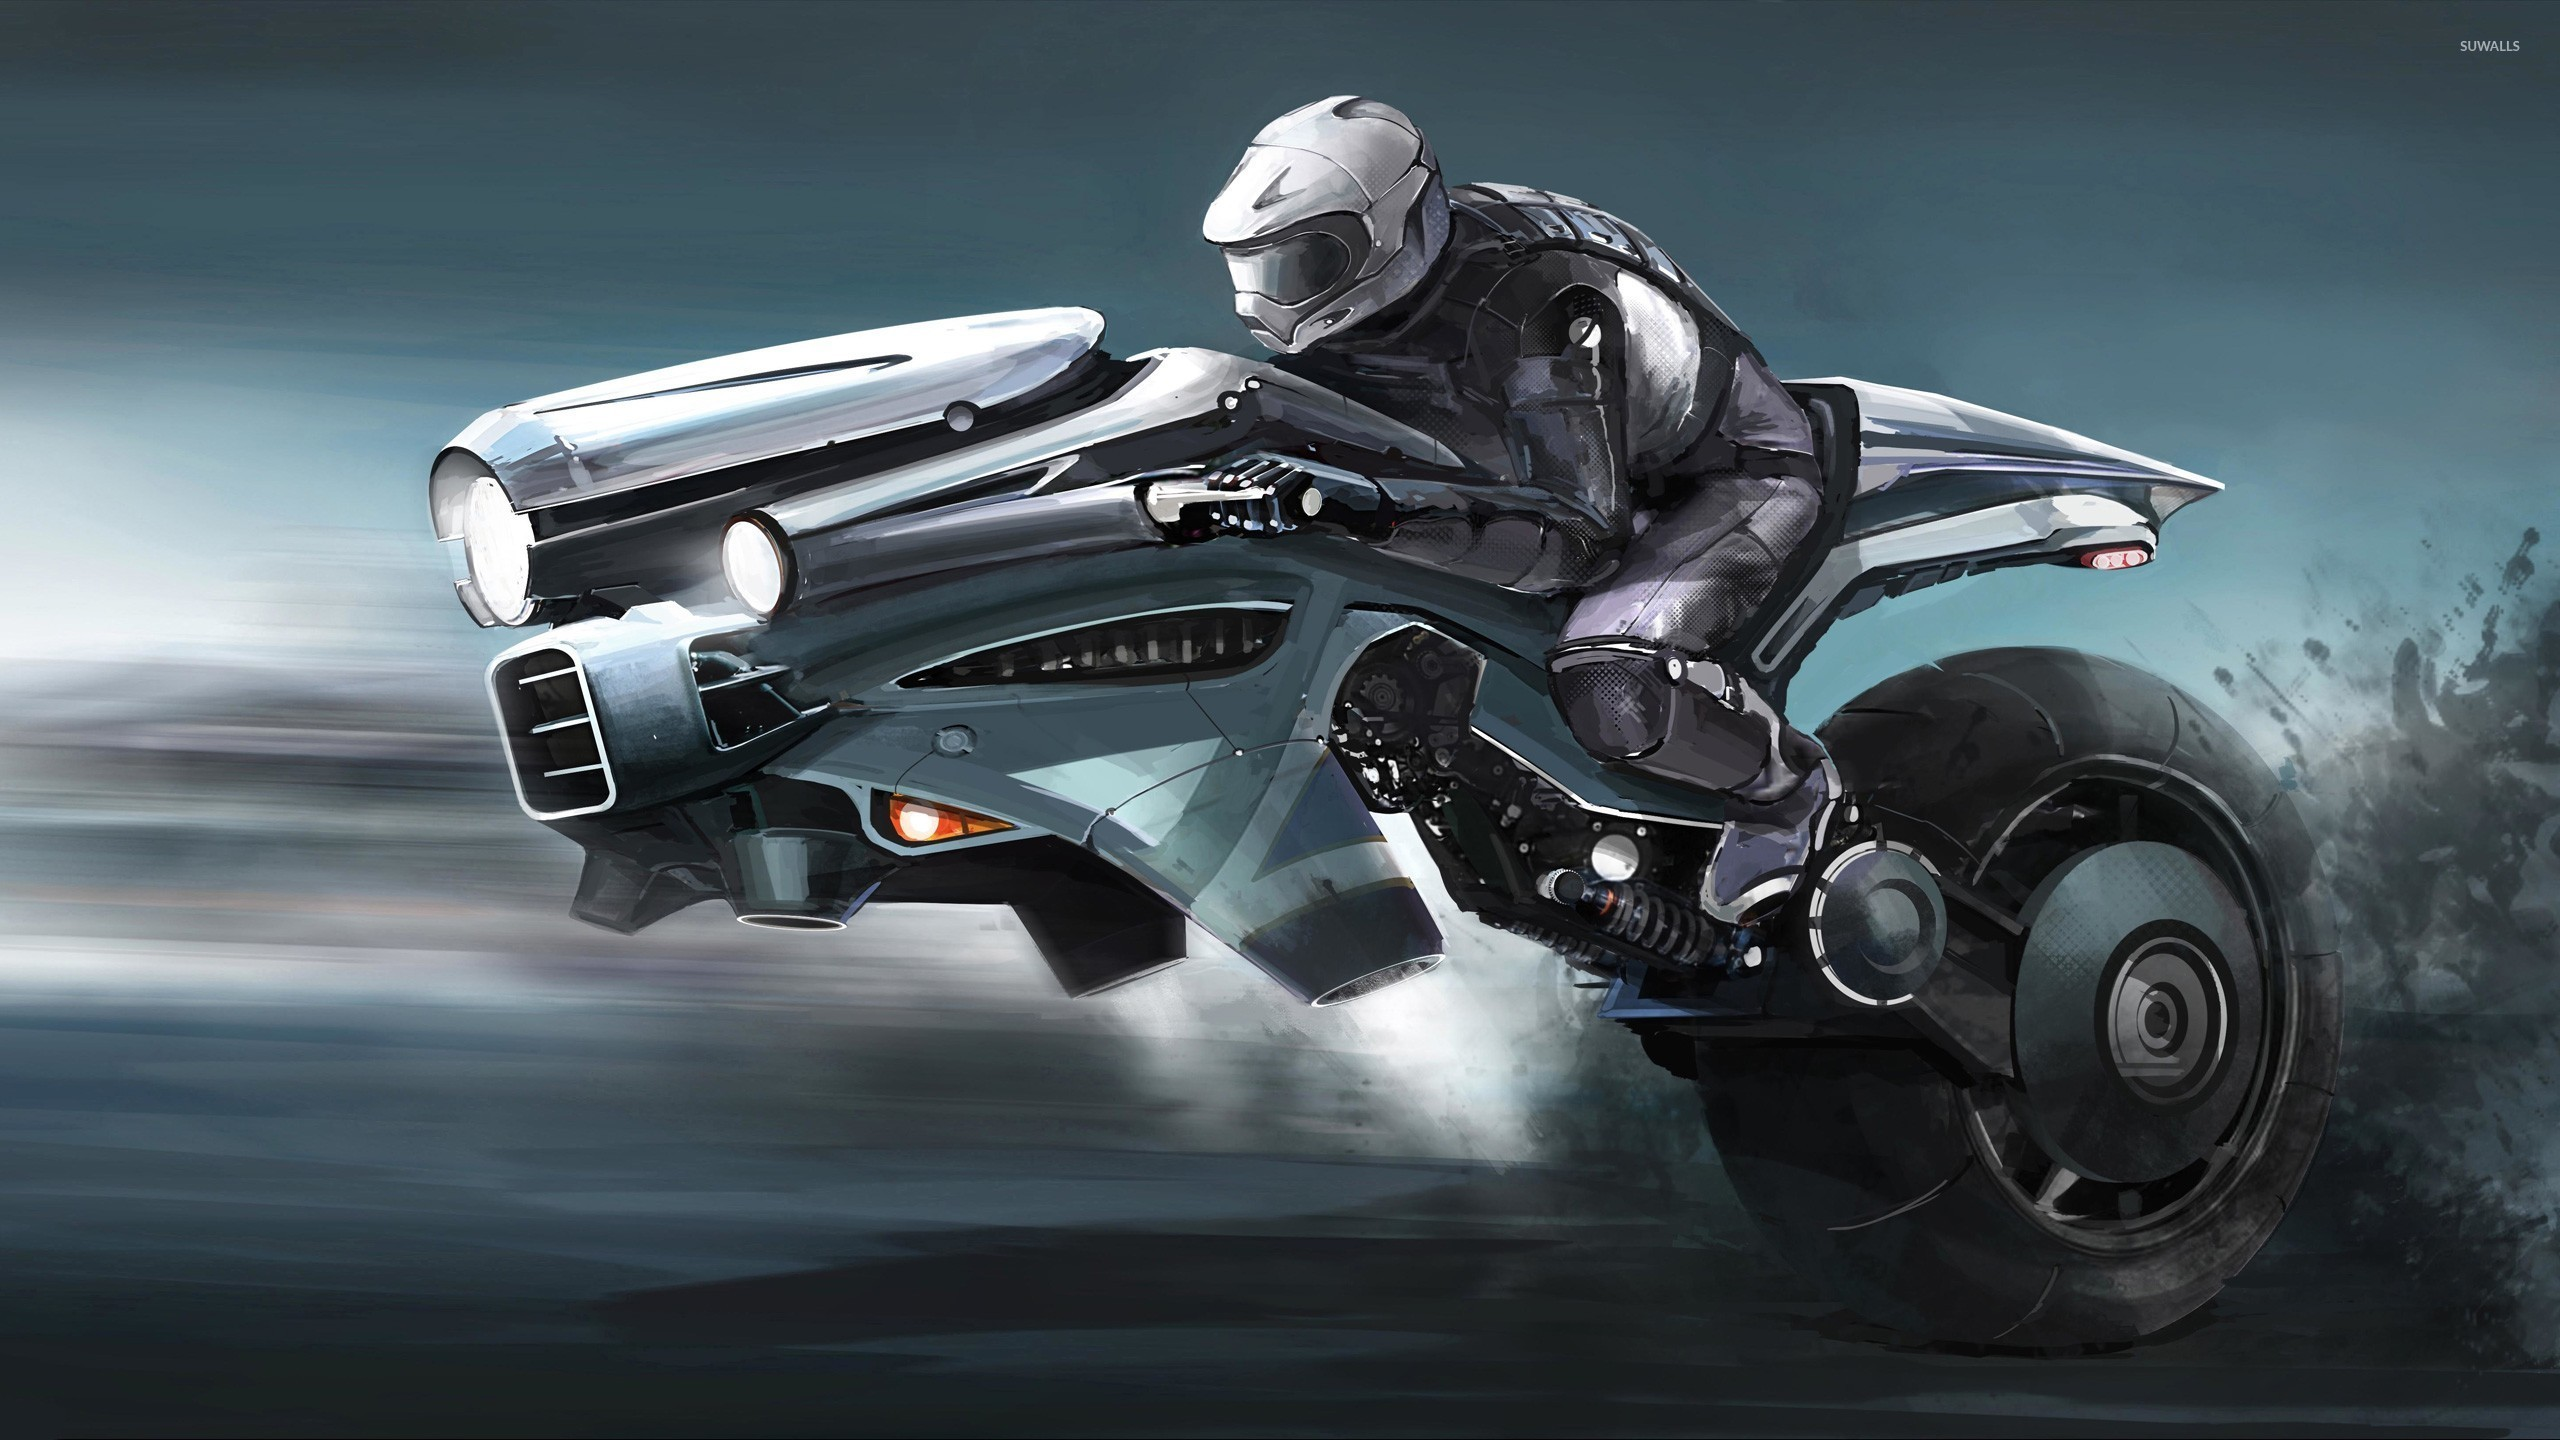 2560x1440 Motorcycle of the future wallpaper